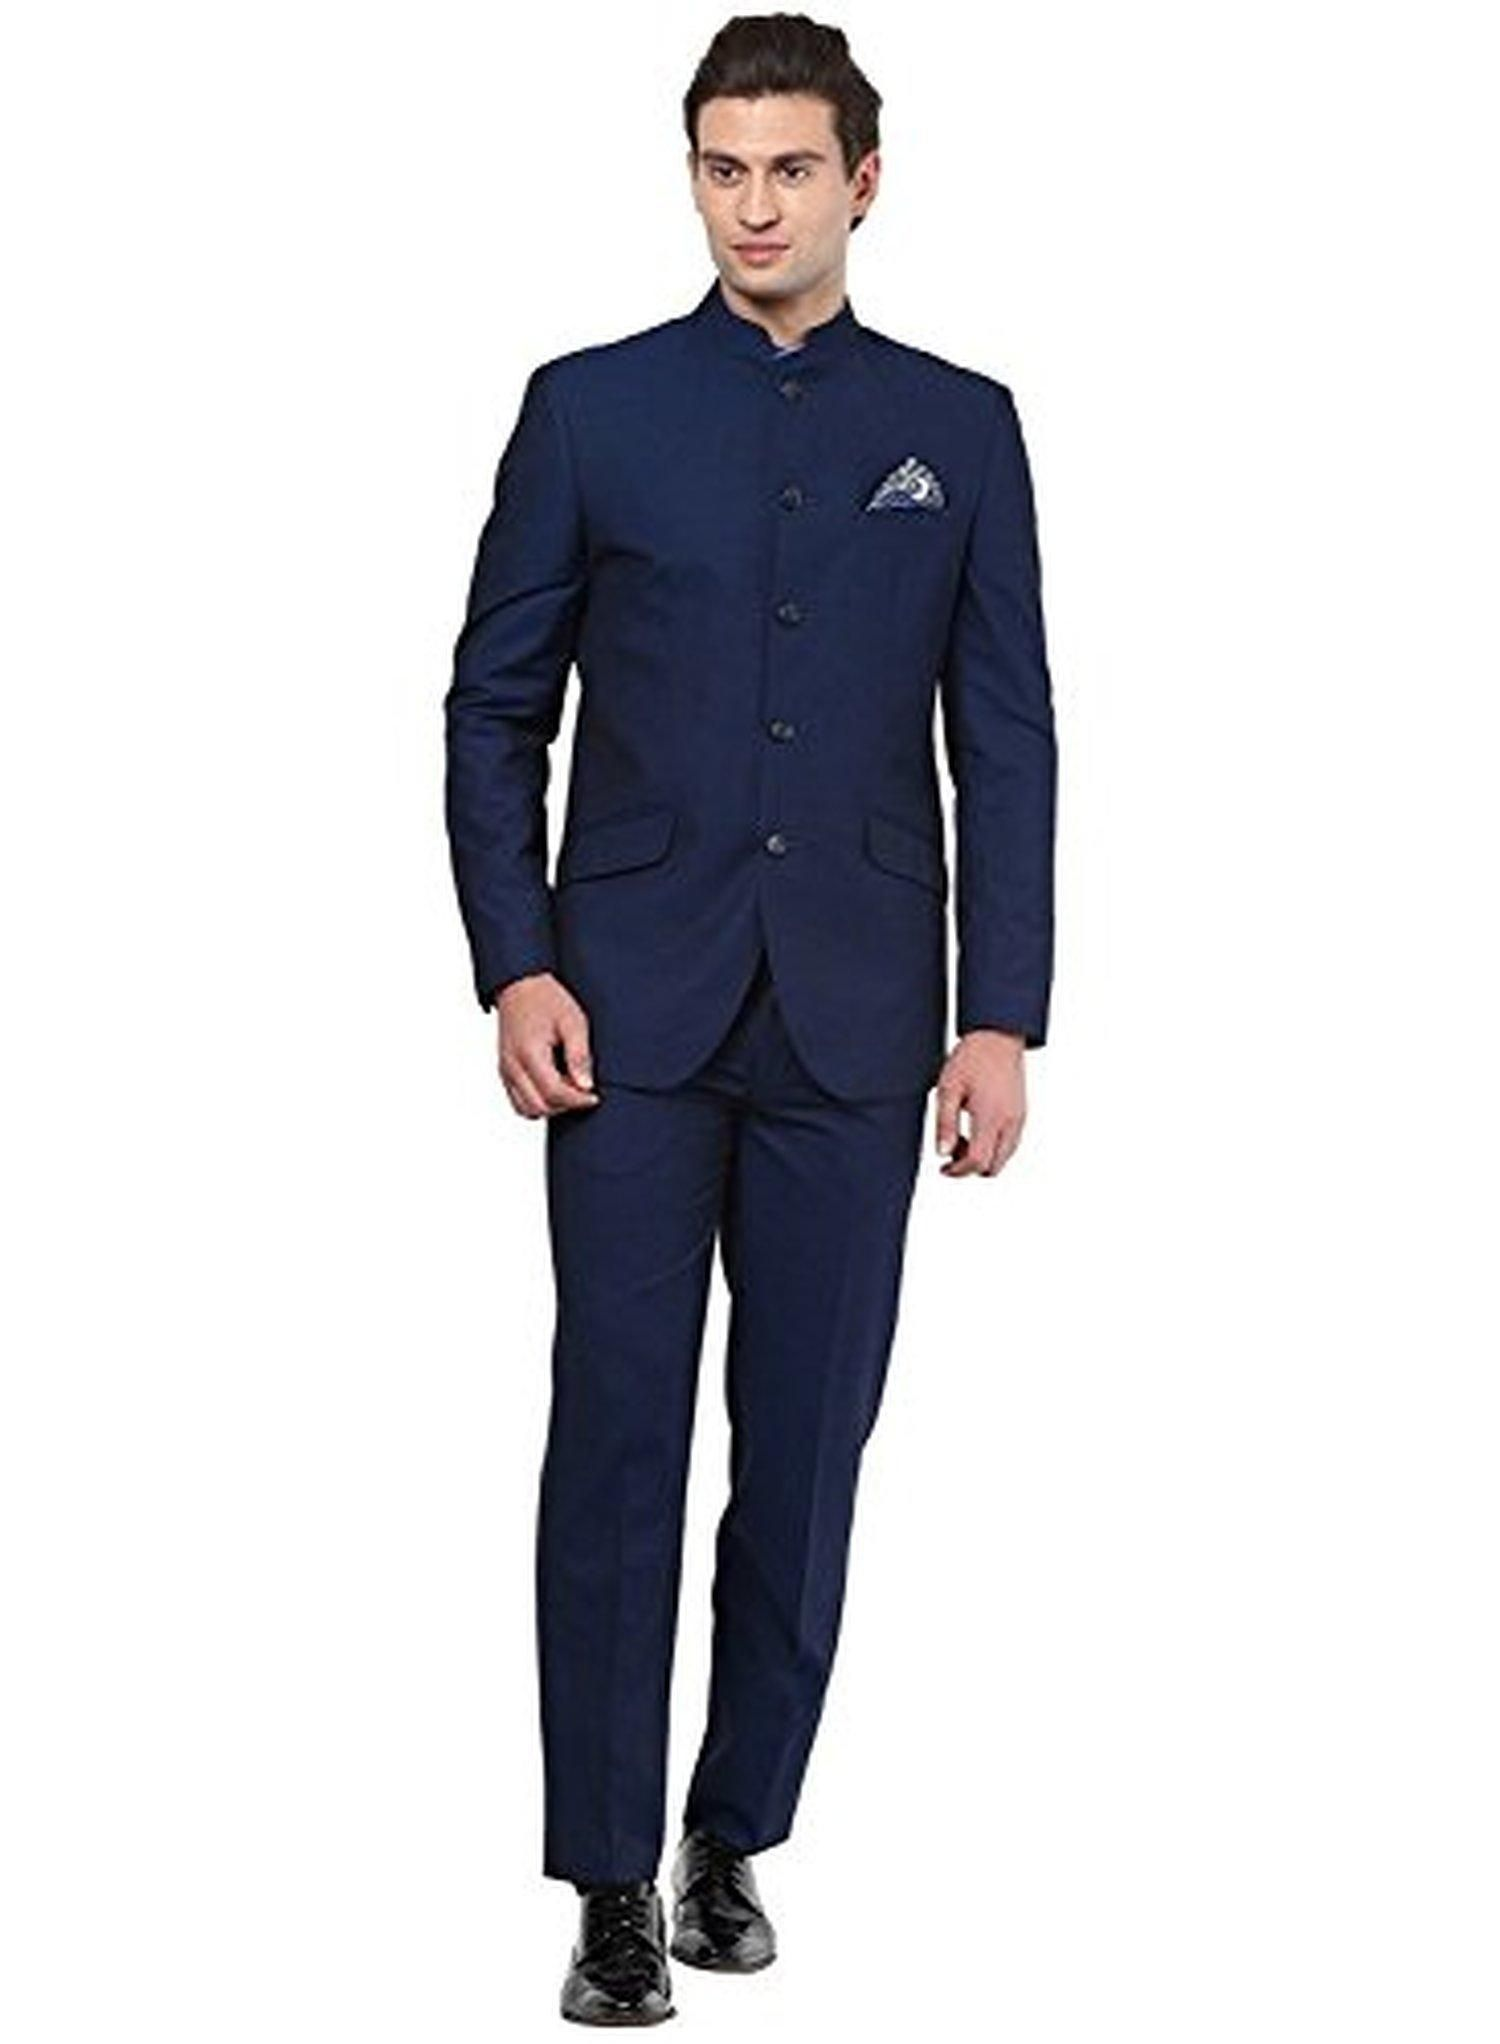 Mens Black Nehru Grandad Collar Suit Ideal For Wedding 36jacket 30 Tendencies Navy Chinos Short 30trouser Blue Brought To You By Avarshacom